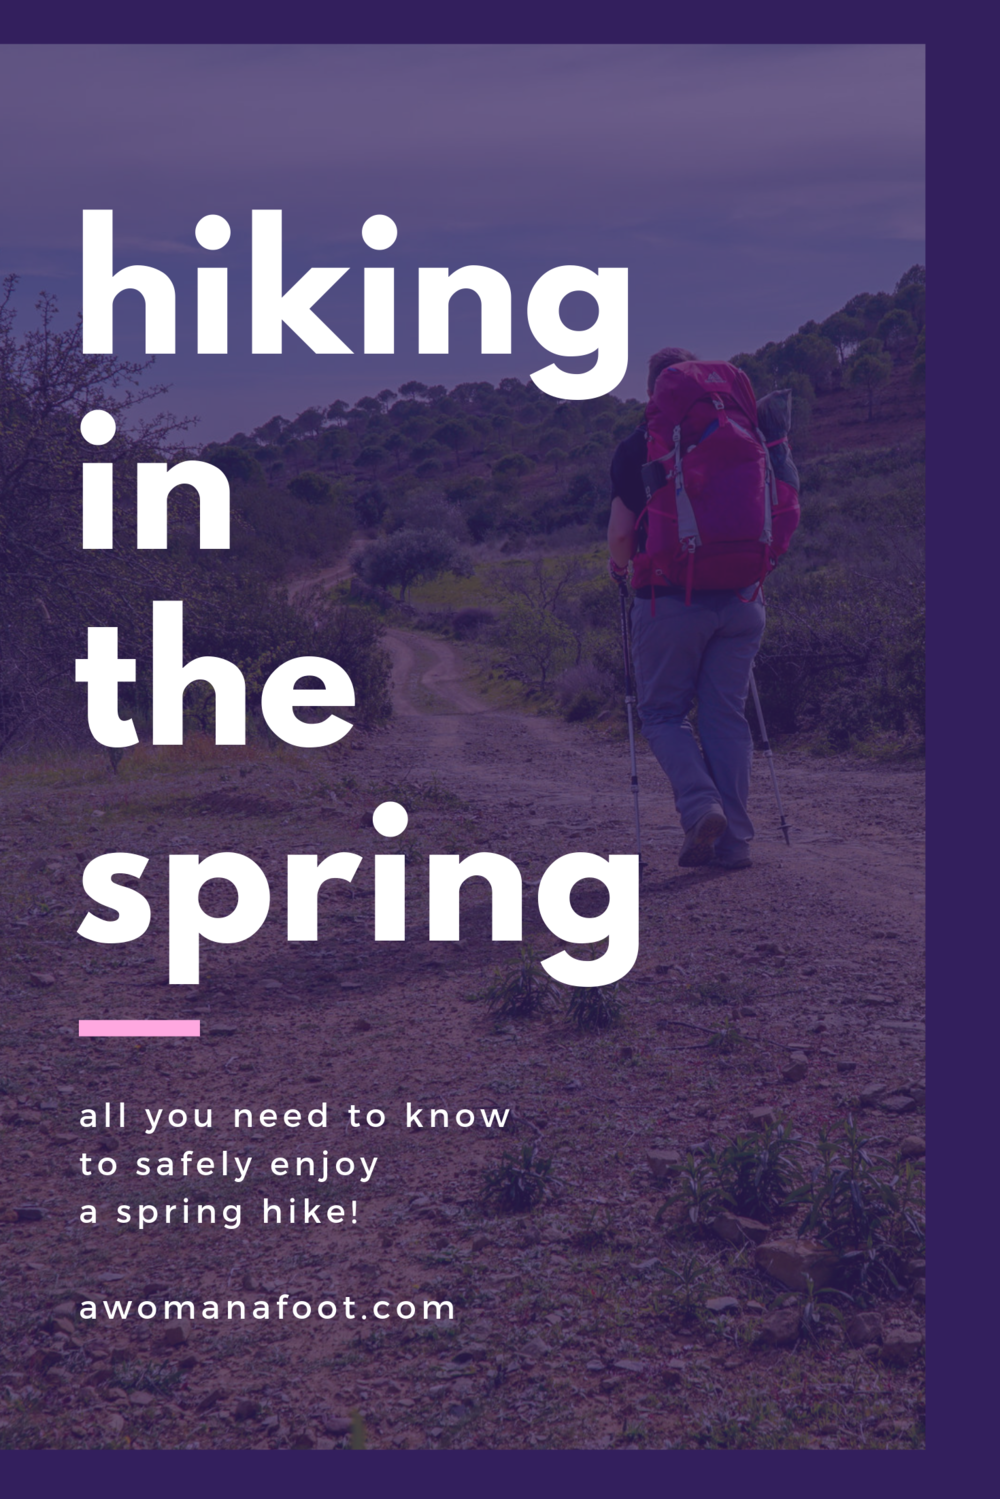 Spring is just the perfect season for hiking! Click to learn all you need to know to enjoy a safe and pleasant spring hike @awomanafoot.com!   Hiking advice   Hiking gear and equipment   What to wear hiking   Hiking clothes   Safe hiking in Spring   Hiking in bad weather   #Hiking #Gear #SpringHiking #HikingTips #HikingGear #Outdoors #HikingAdvice